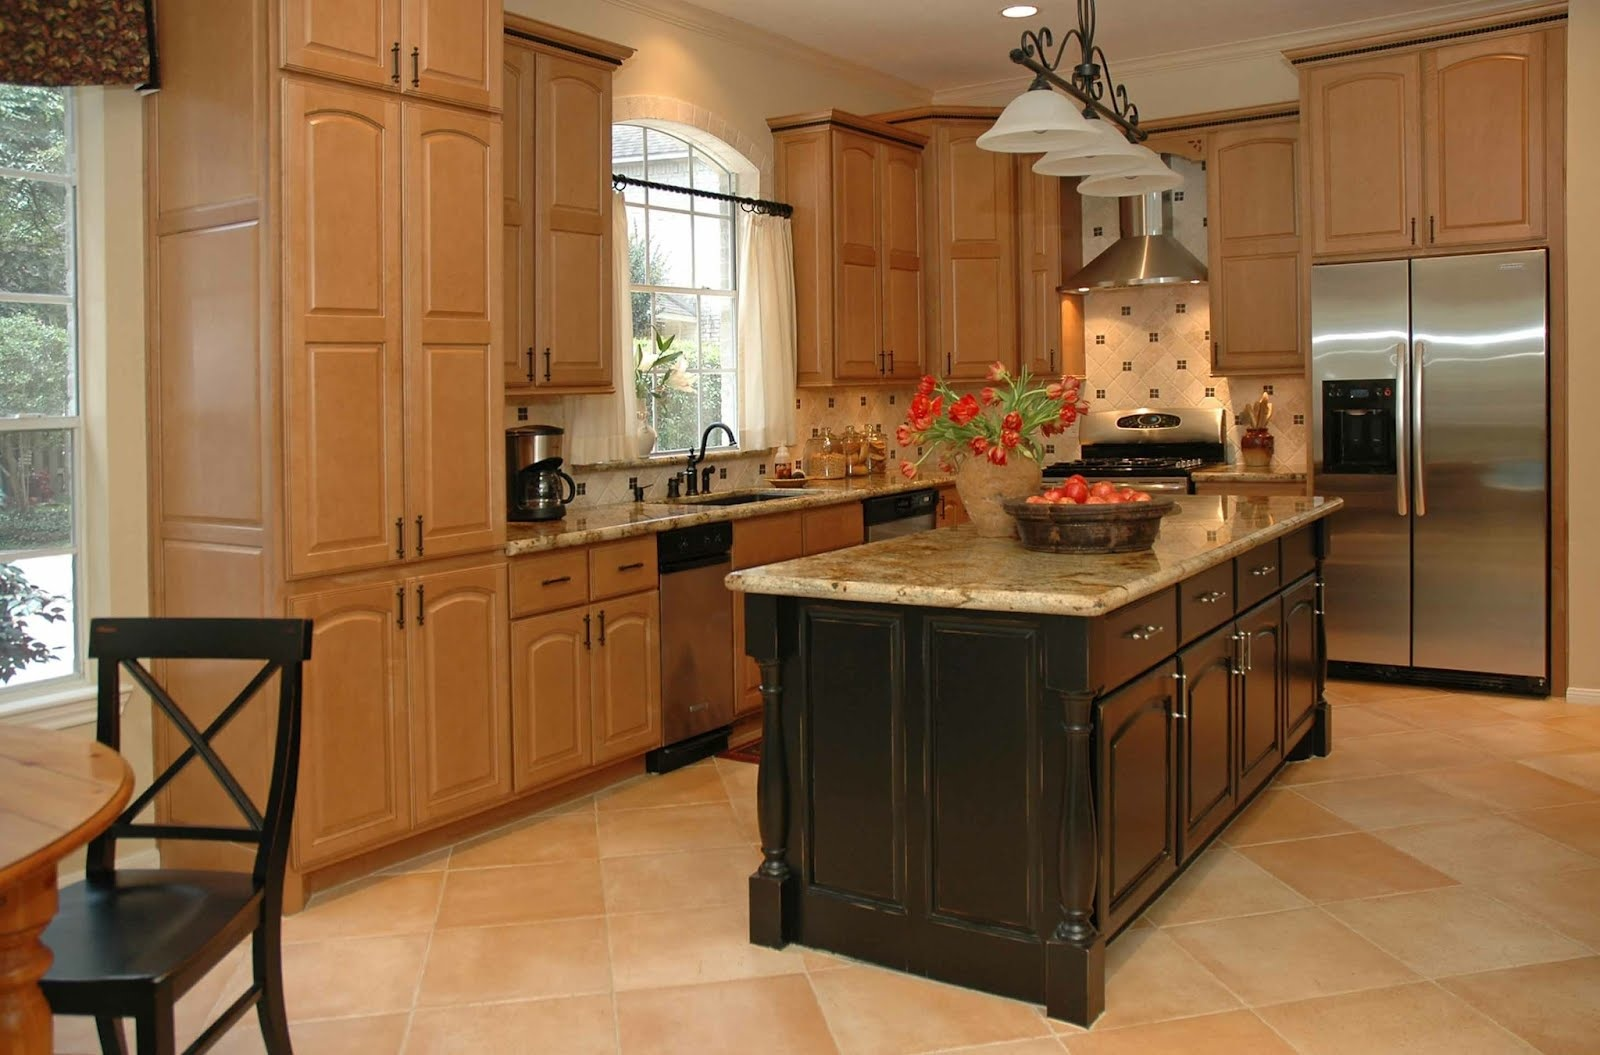 exciting unique kitchen island designs | An oddly-shaped kitchen island | Why it's one of my ...